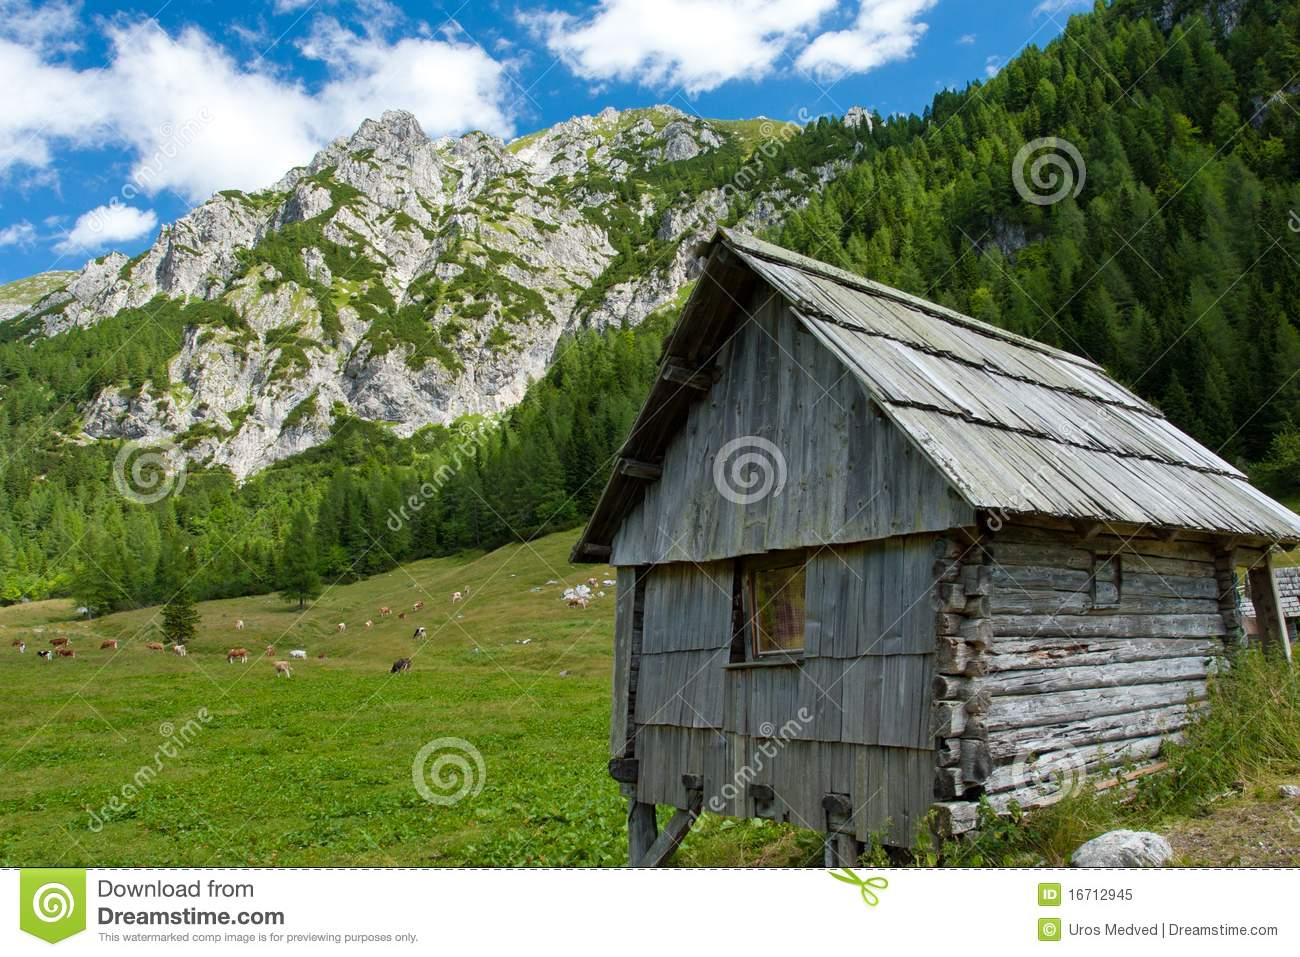 wooden hut near mountain - photo #8